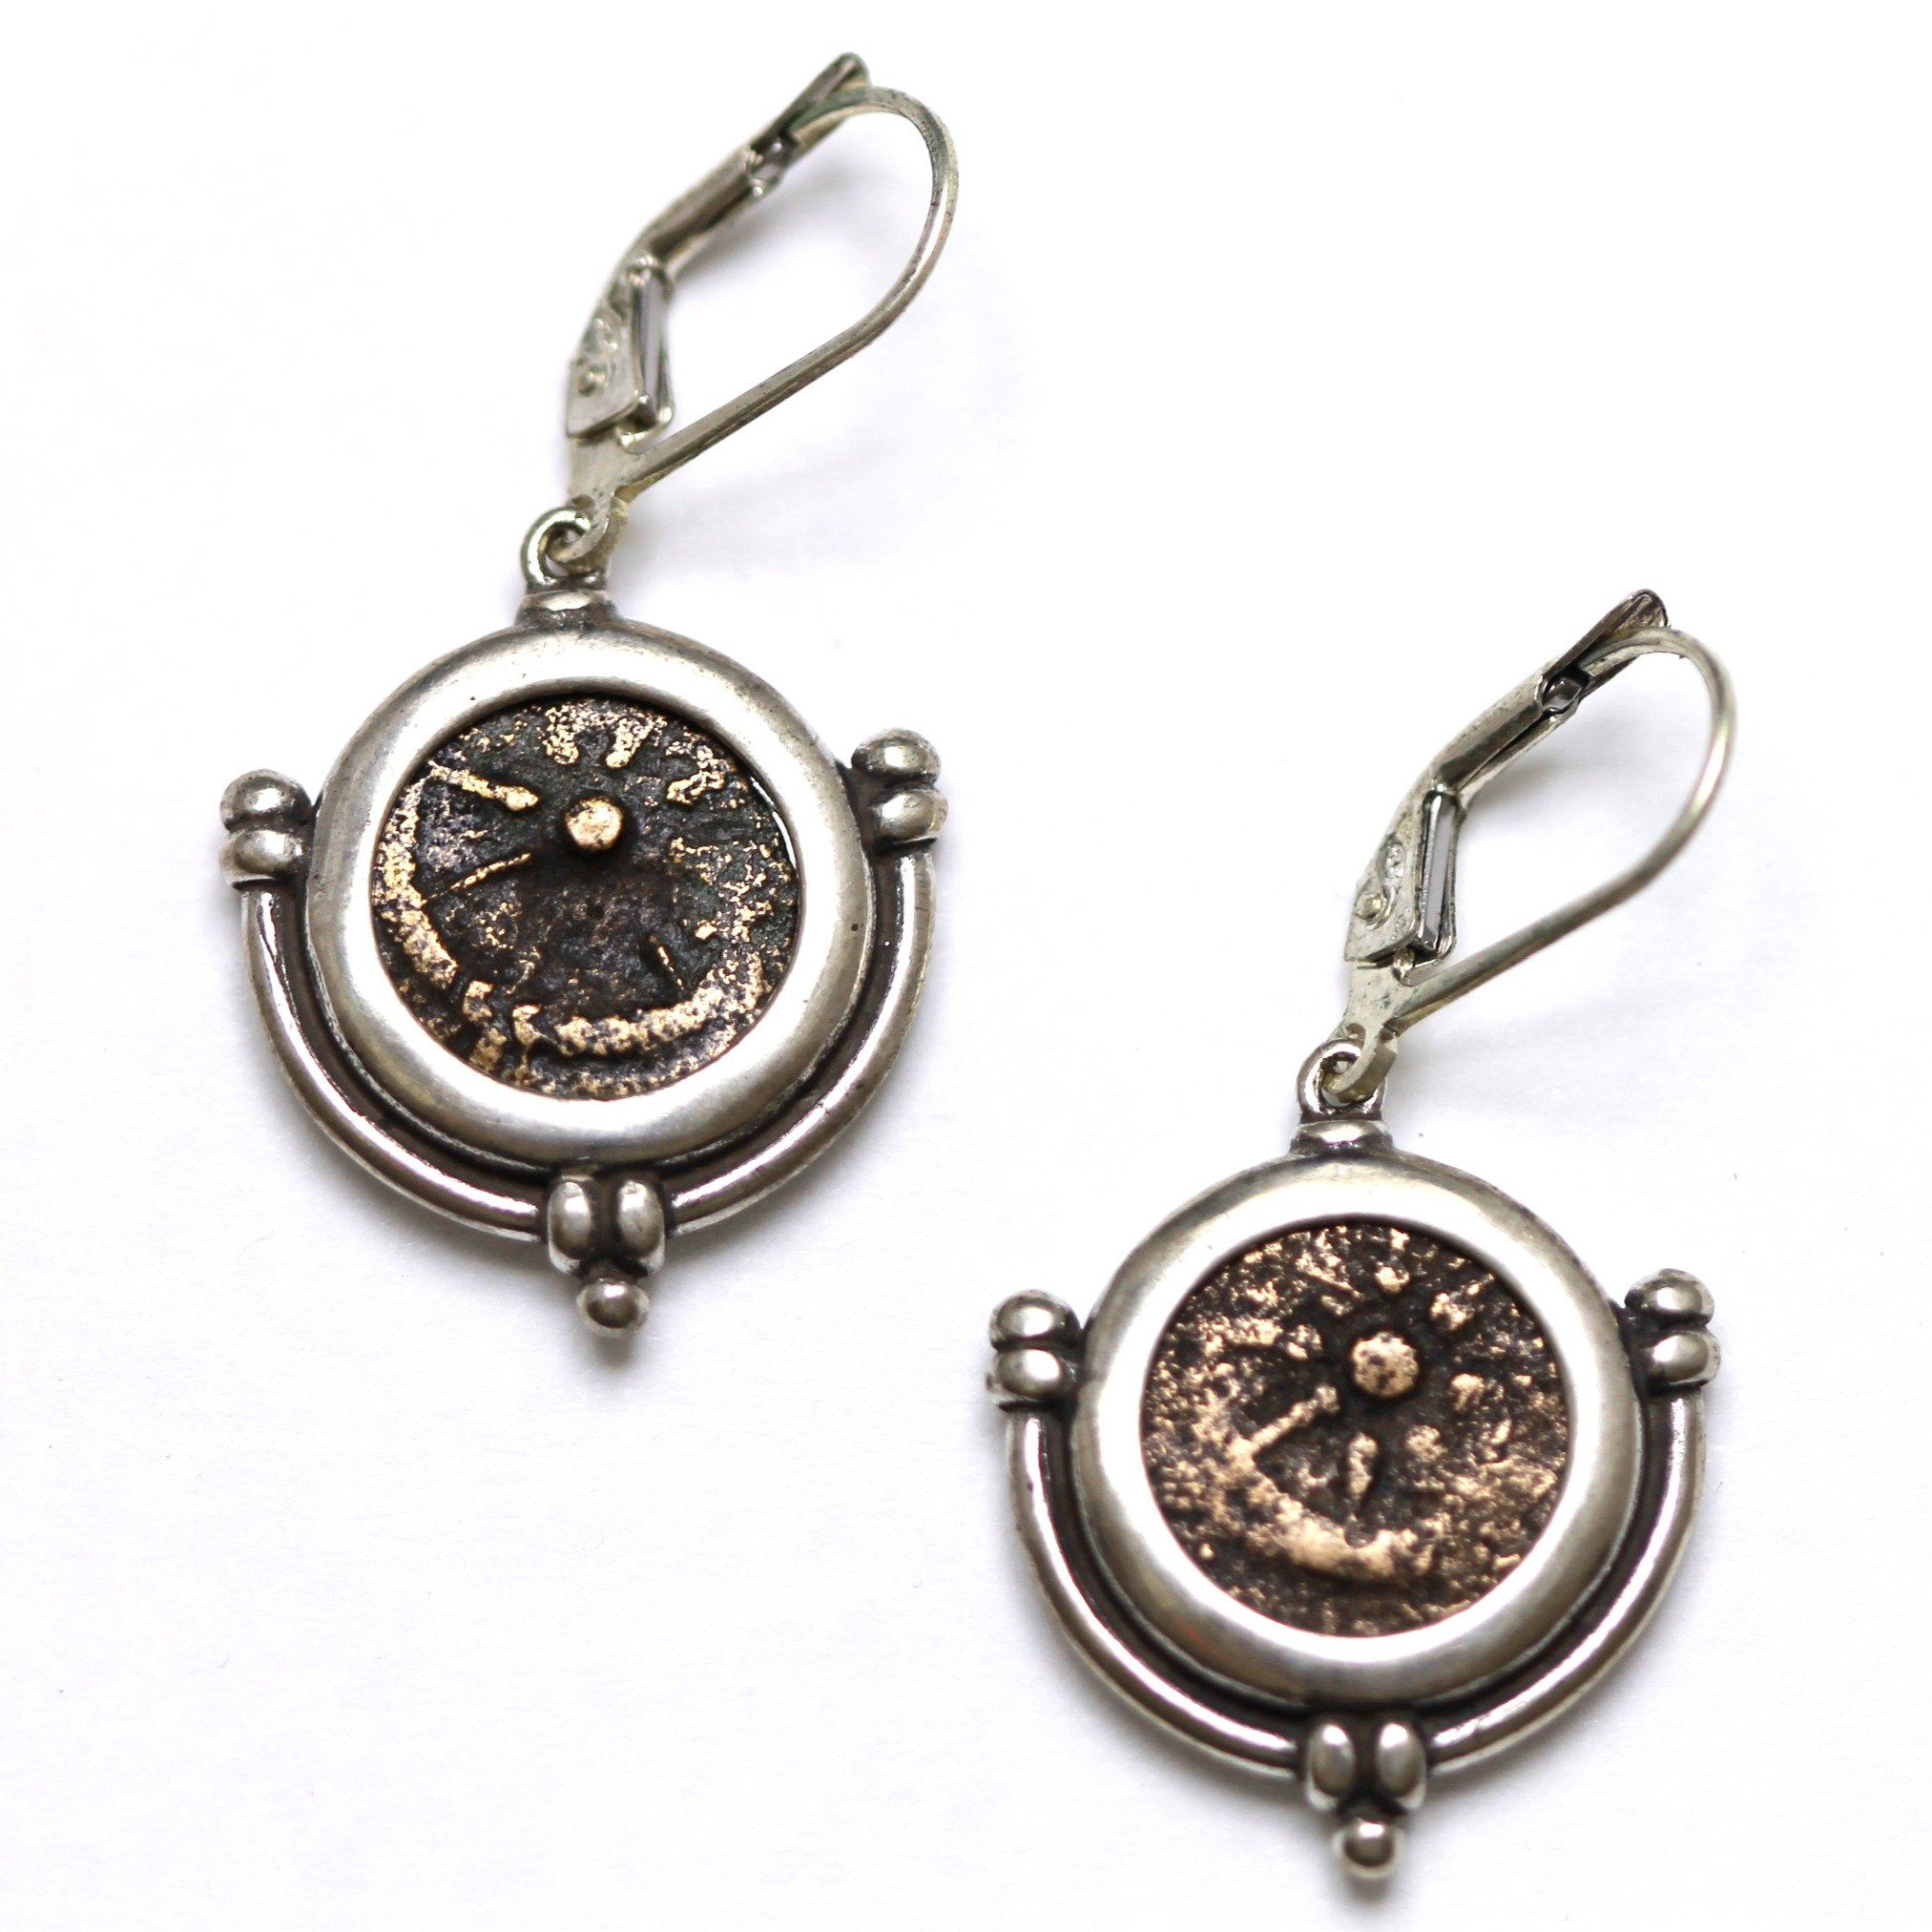 Sterling Silver Earrings, Widows Mite, Ancient Judaean Coins, ID13371 - Erez Ancient Coin Jewelry, ancient coin jewelry, men jewelry, genuine ancient coins, made in the US